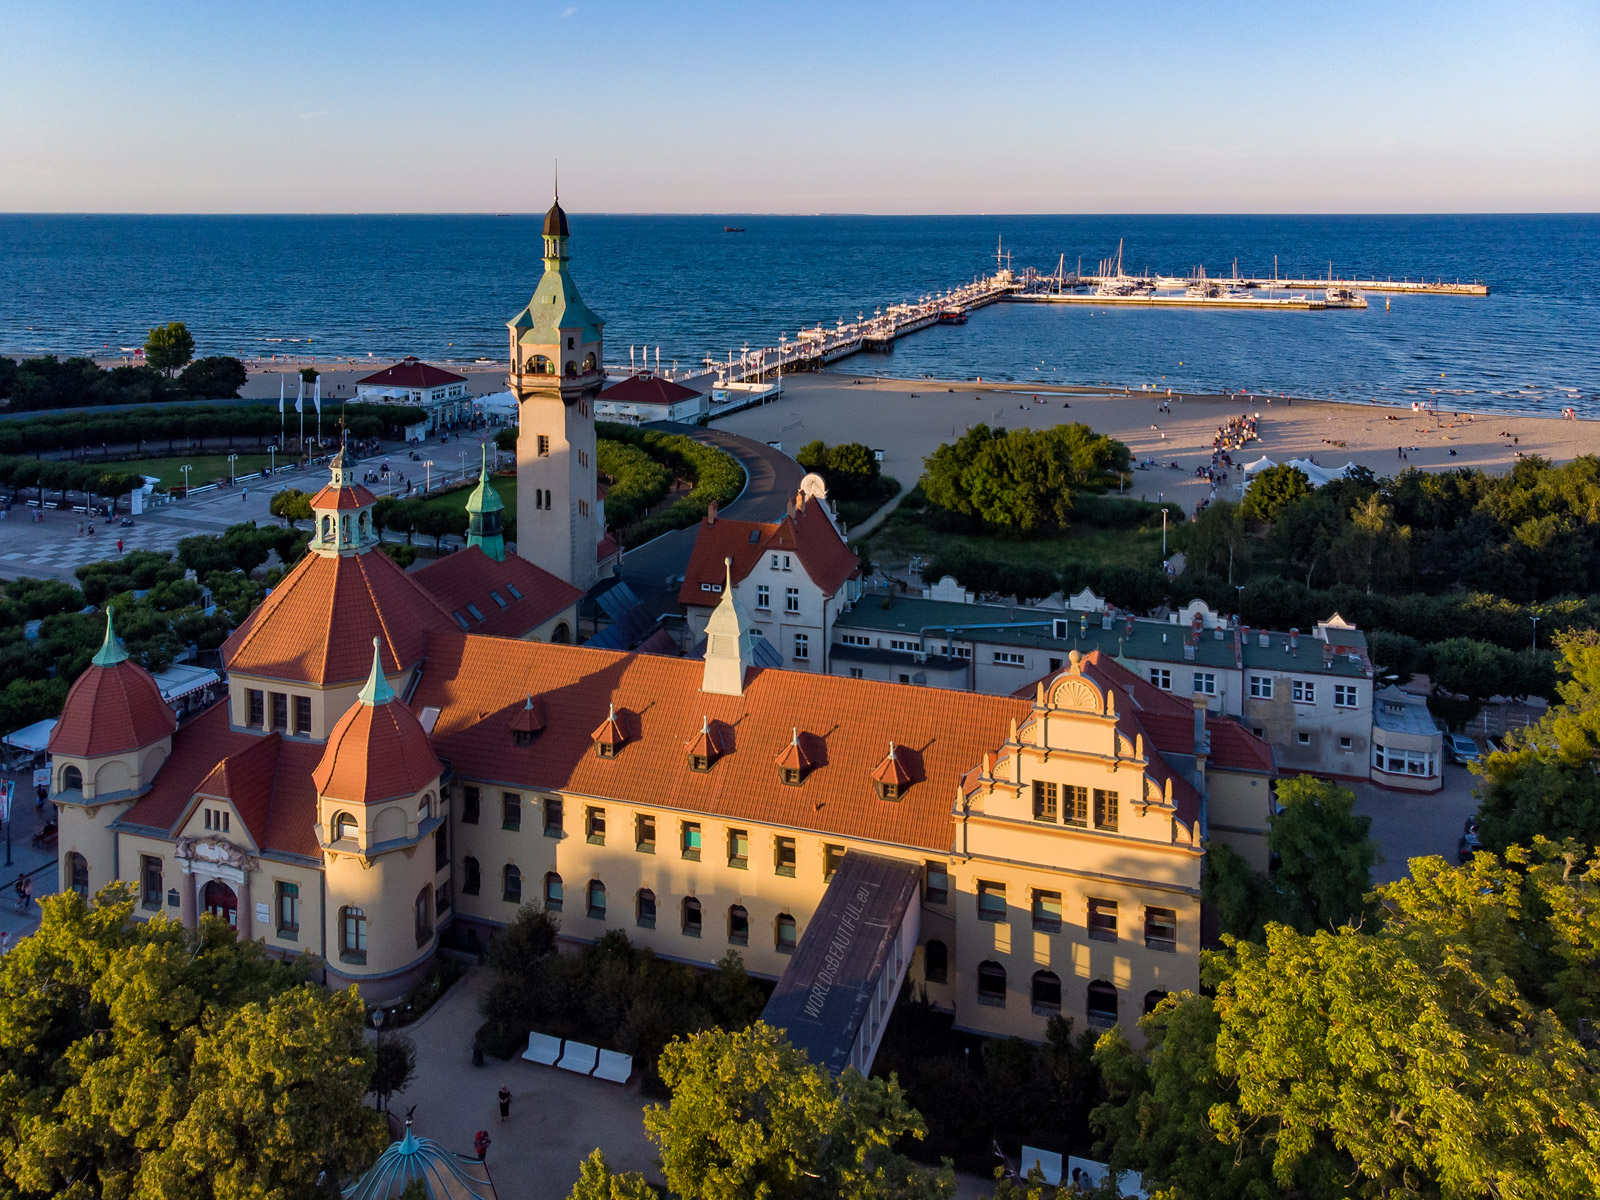 The lighthouse in Sopot